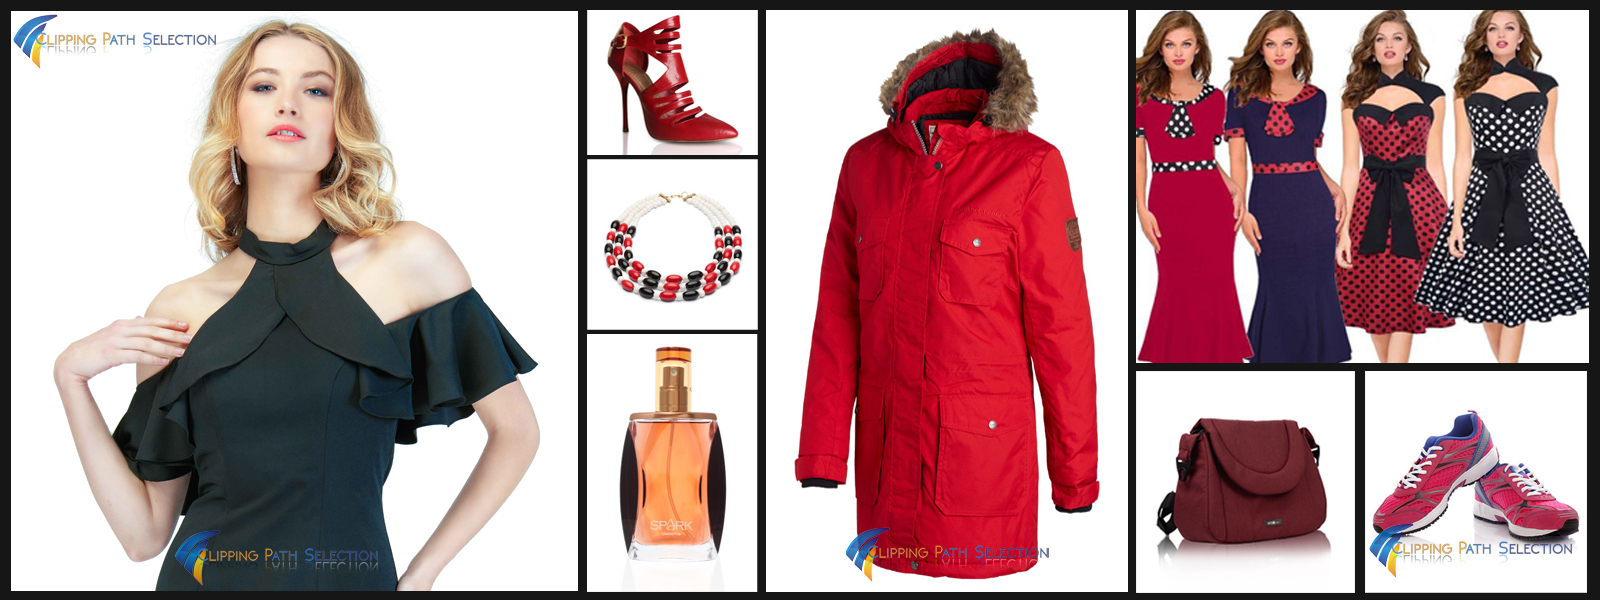 Clipping Path Selection Photo Editing